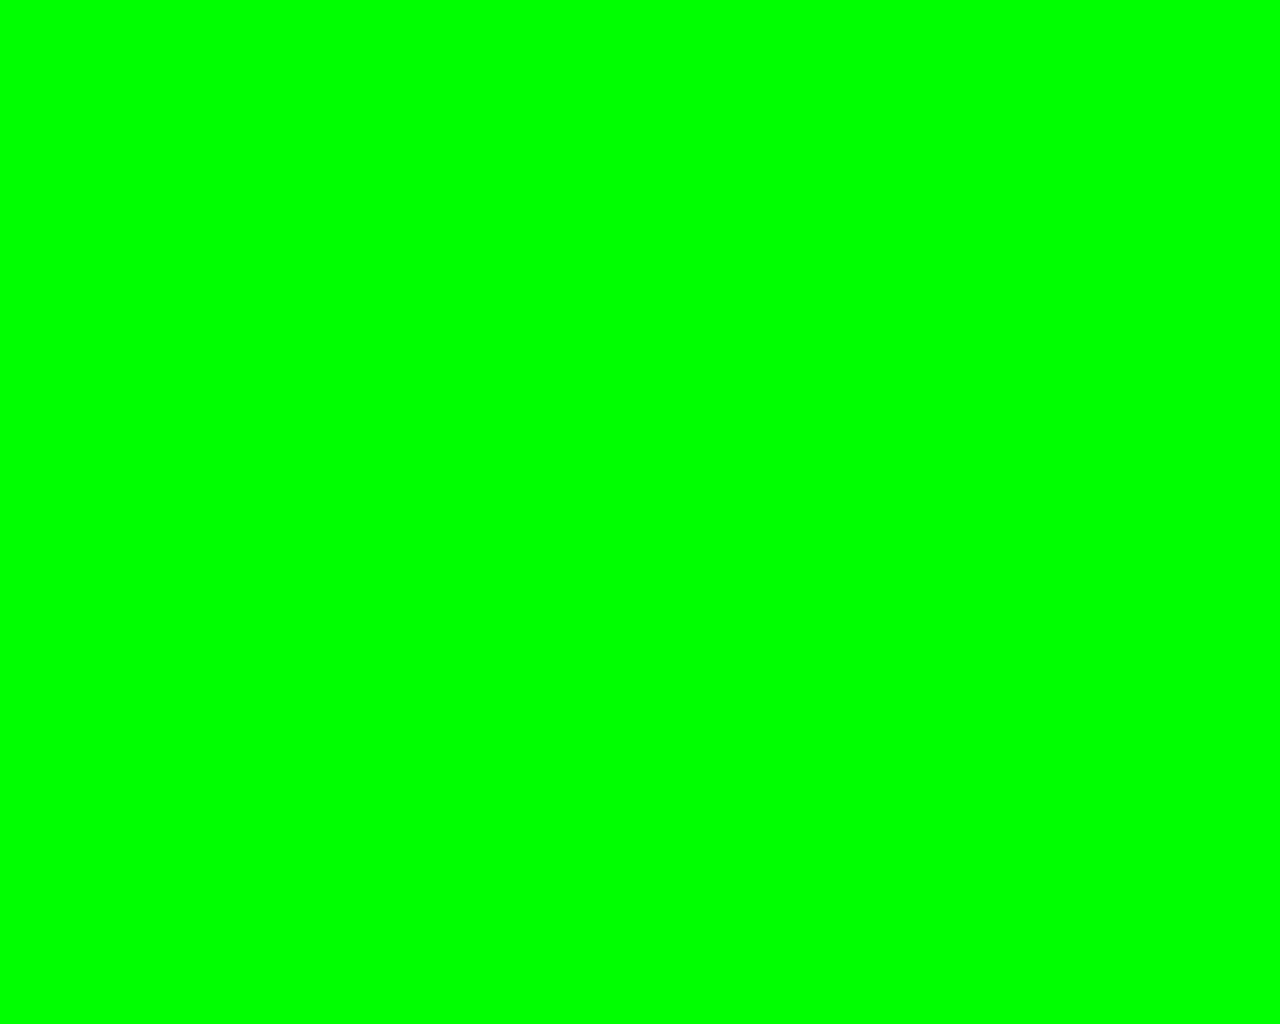 1280x1024 Green X11 Gui Green Solid Color Background